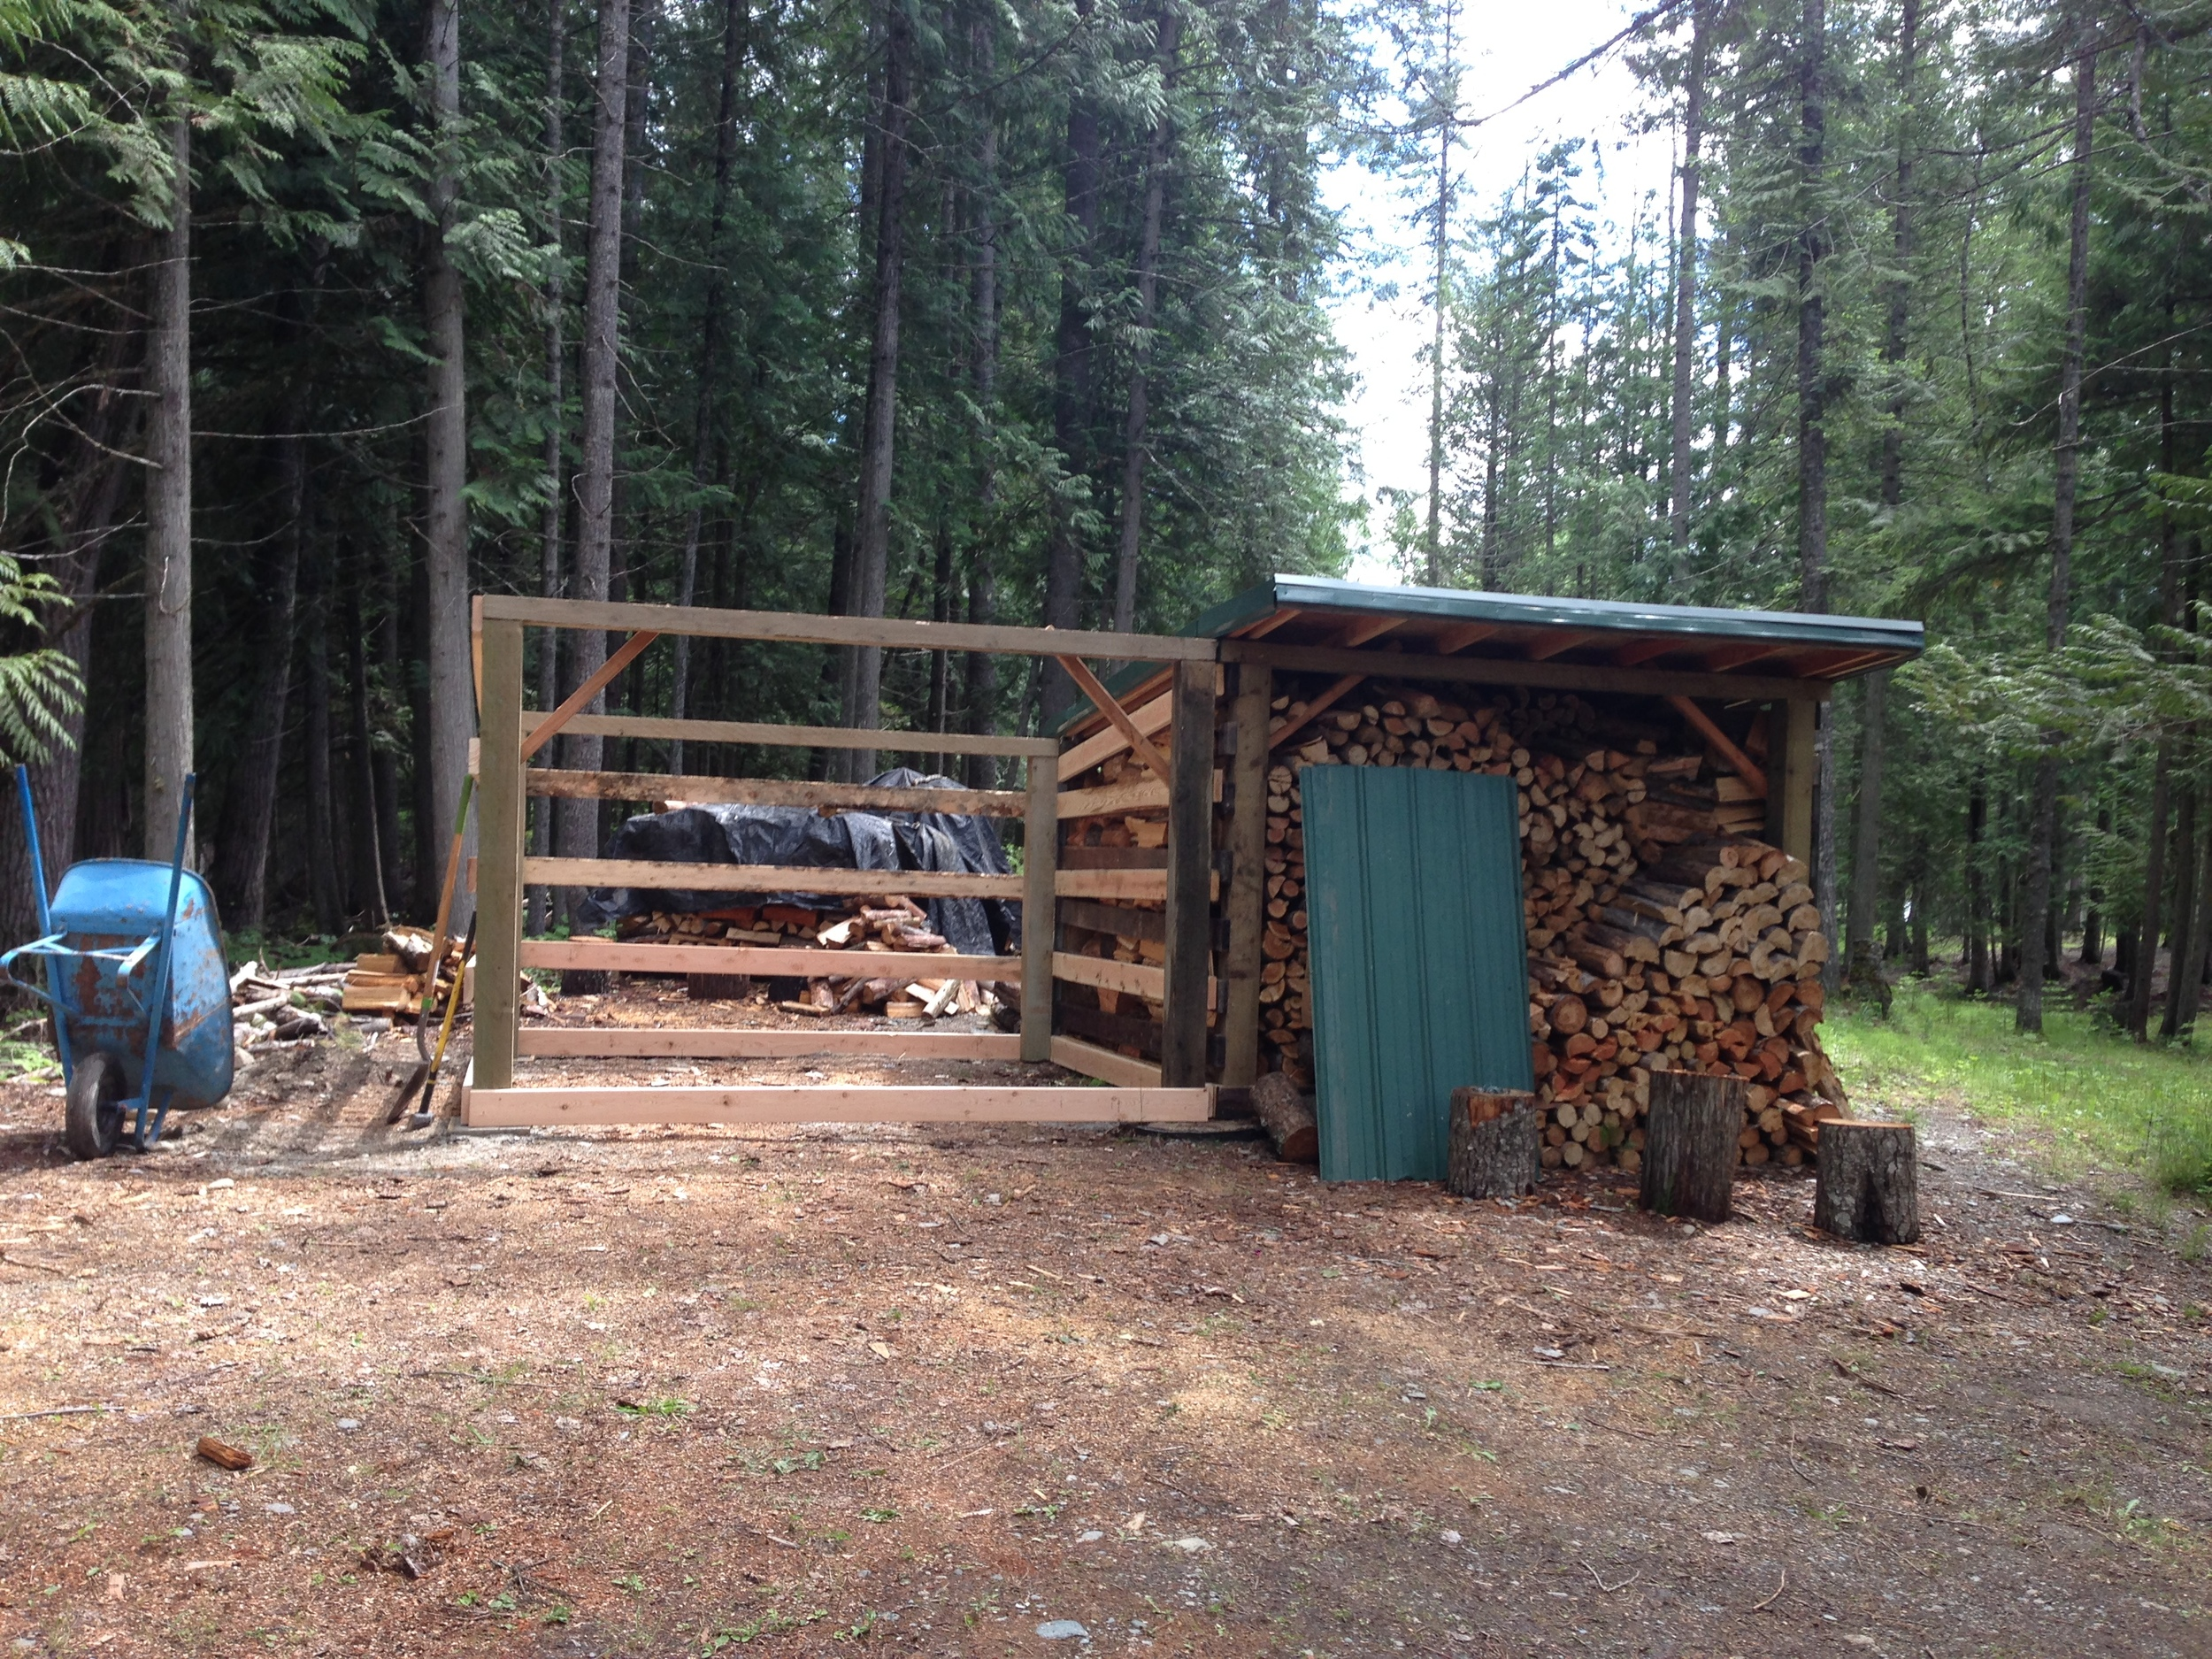 Second wood shed during construction.